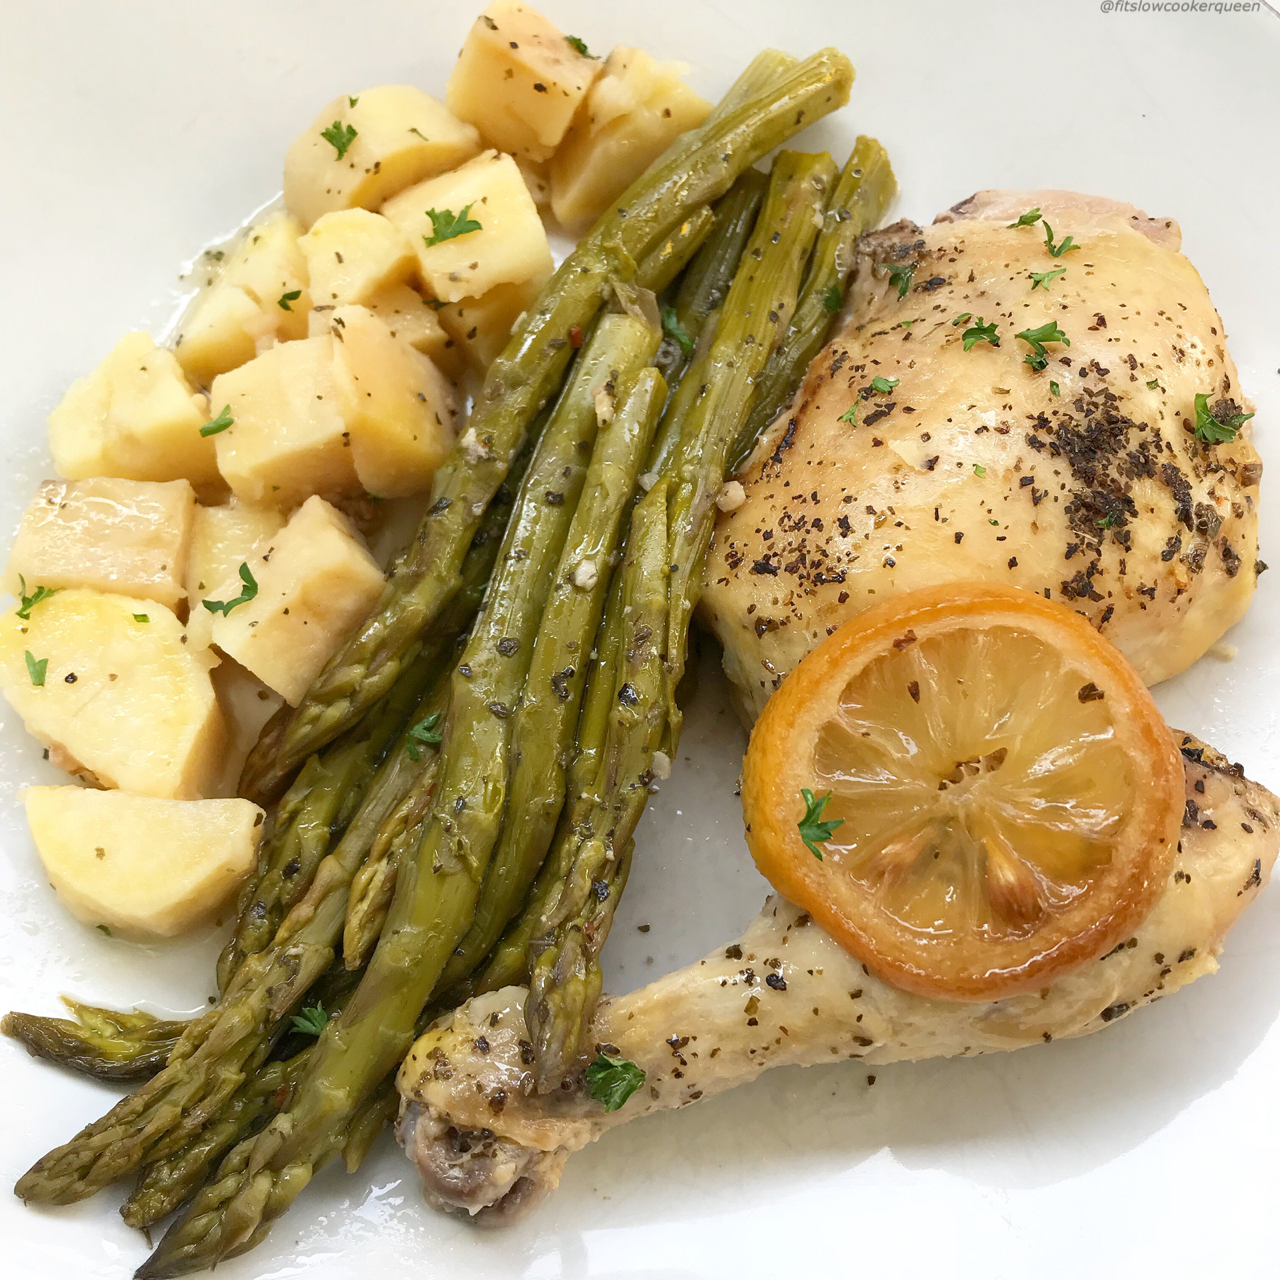 A light, homemade lemon-garlic sauce accompanies any cut of chicken, potatoes or sweet potatoes, and your favorite vegetable for this flavorful whole30 and paleo slow cooker recipe.